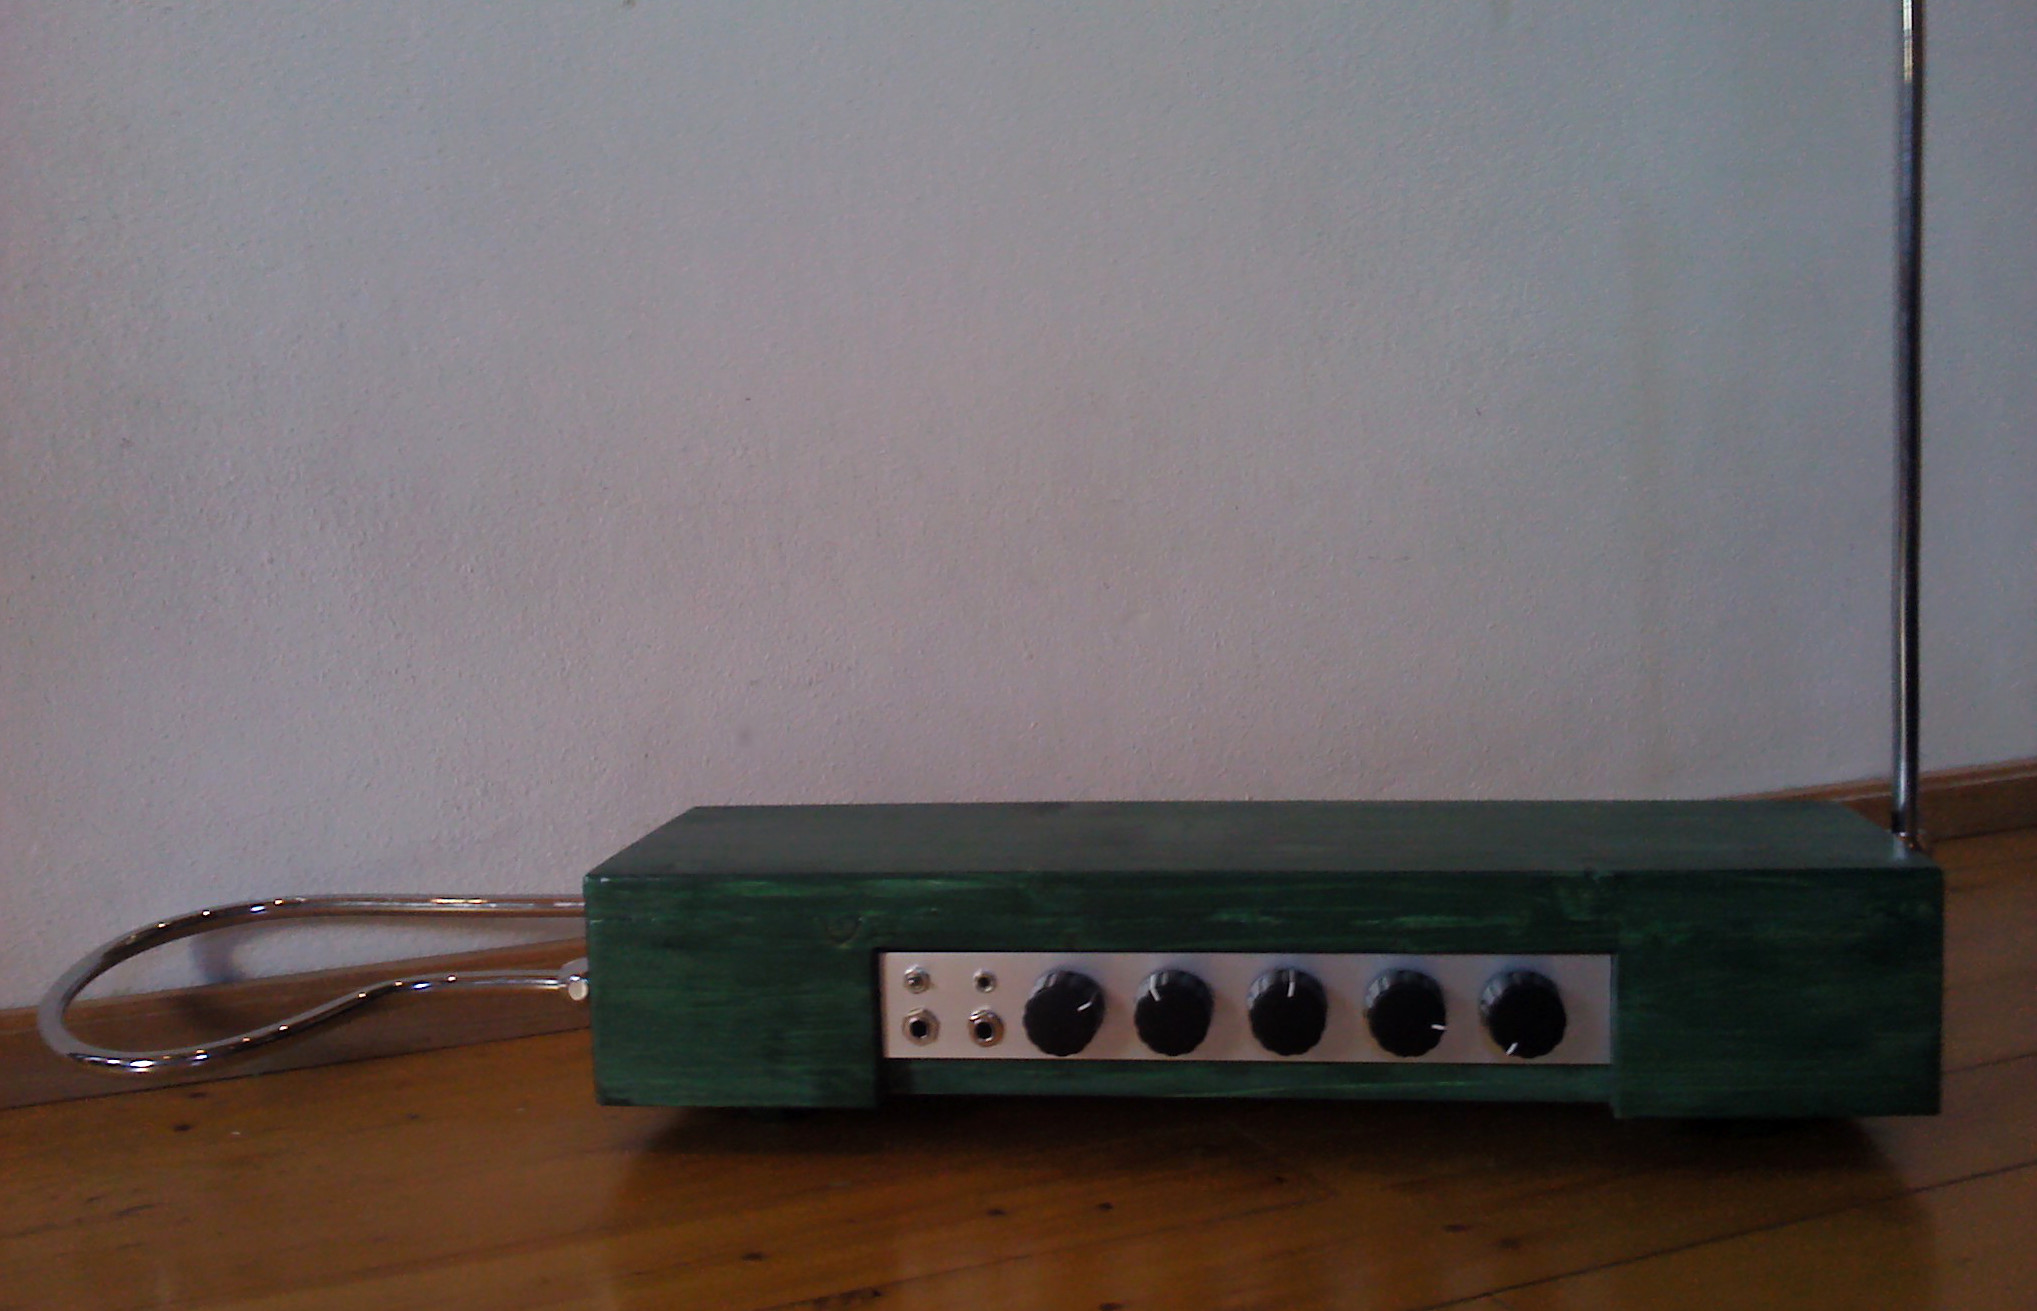 Homemade Theremin 2013